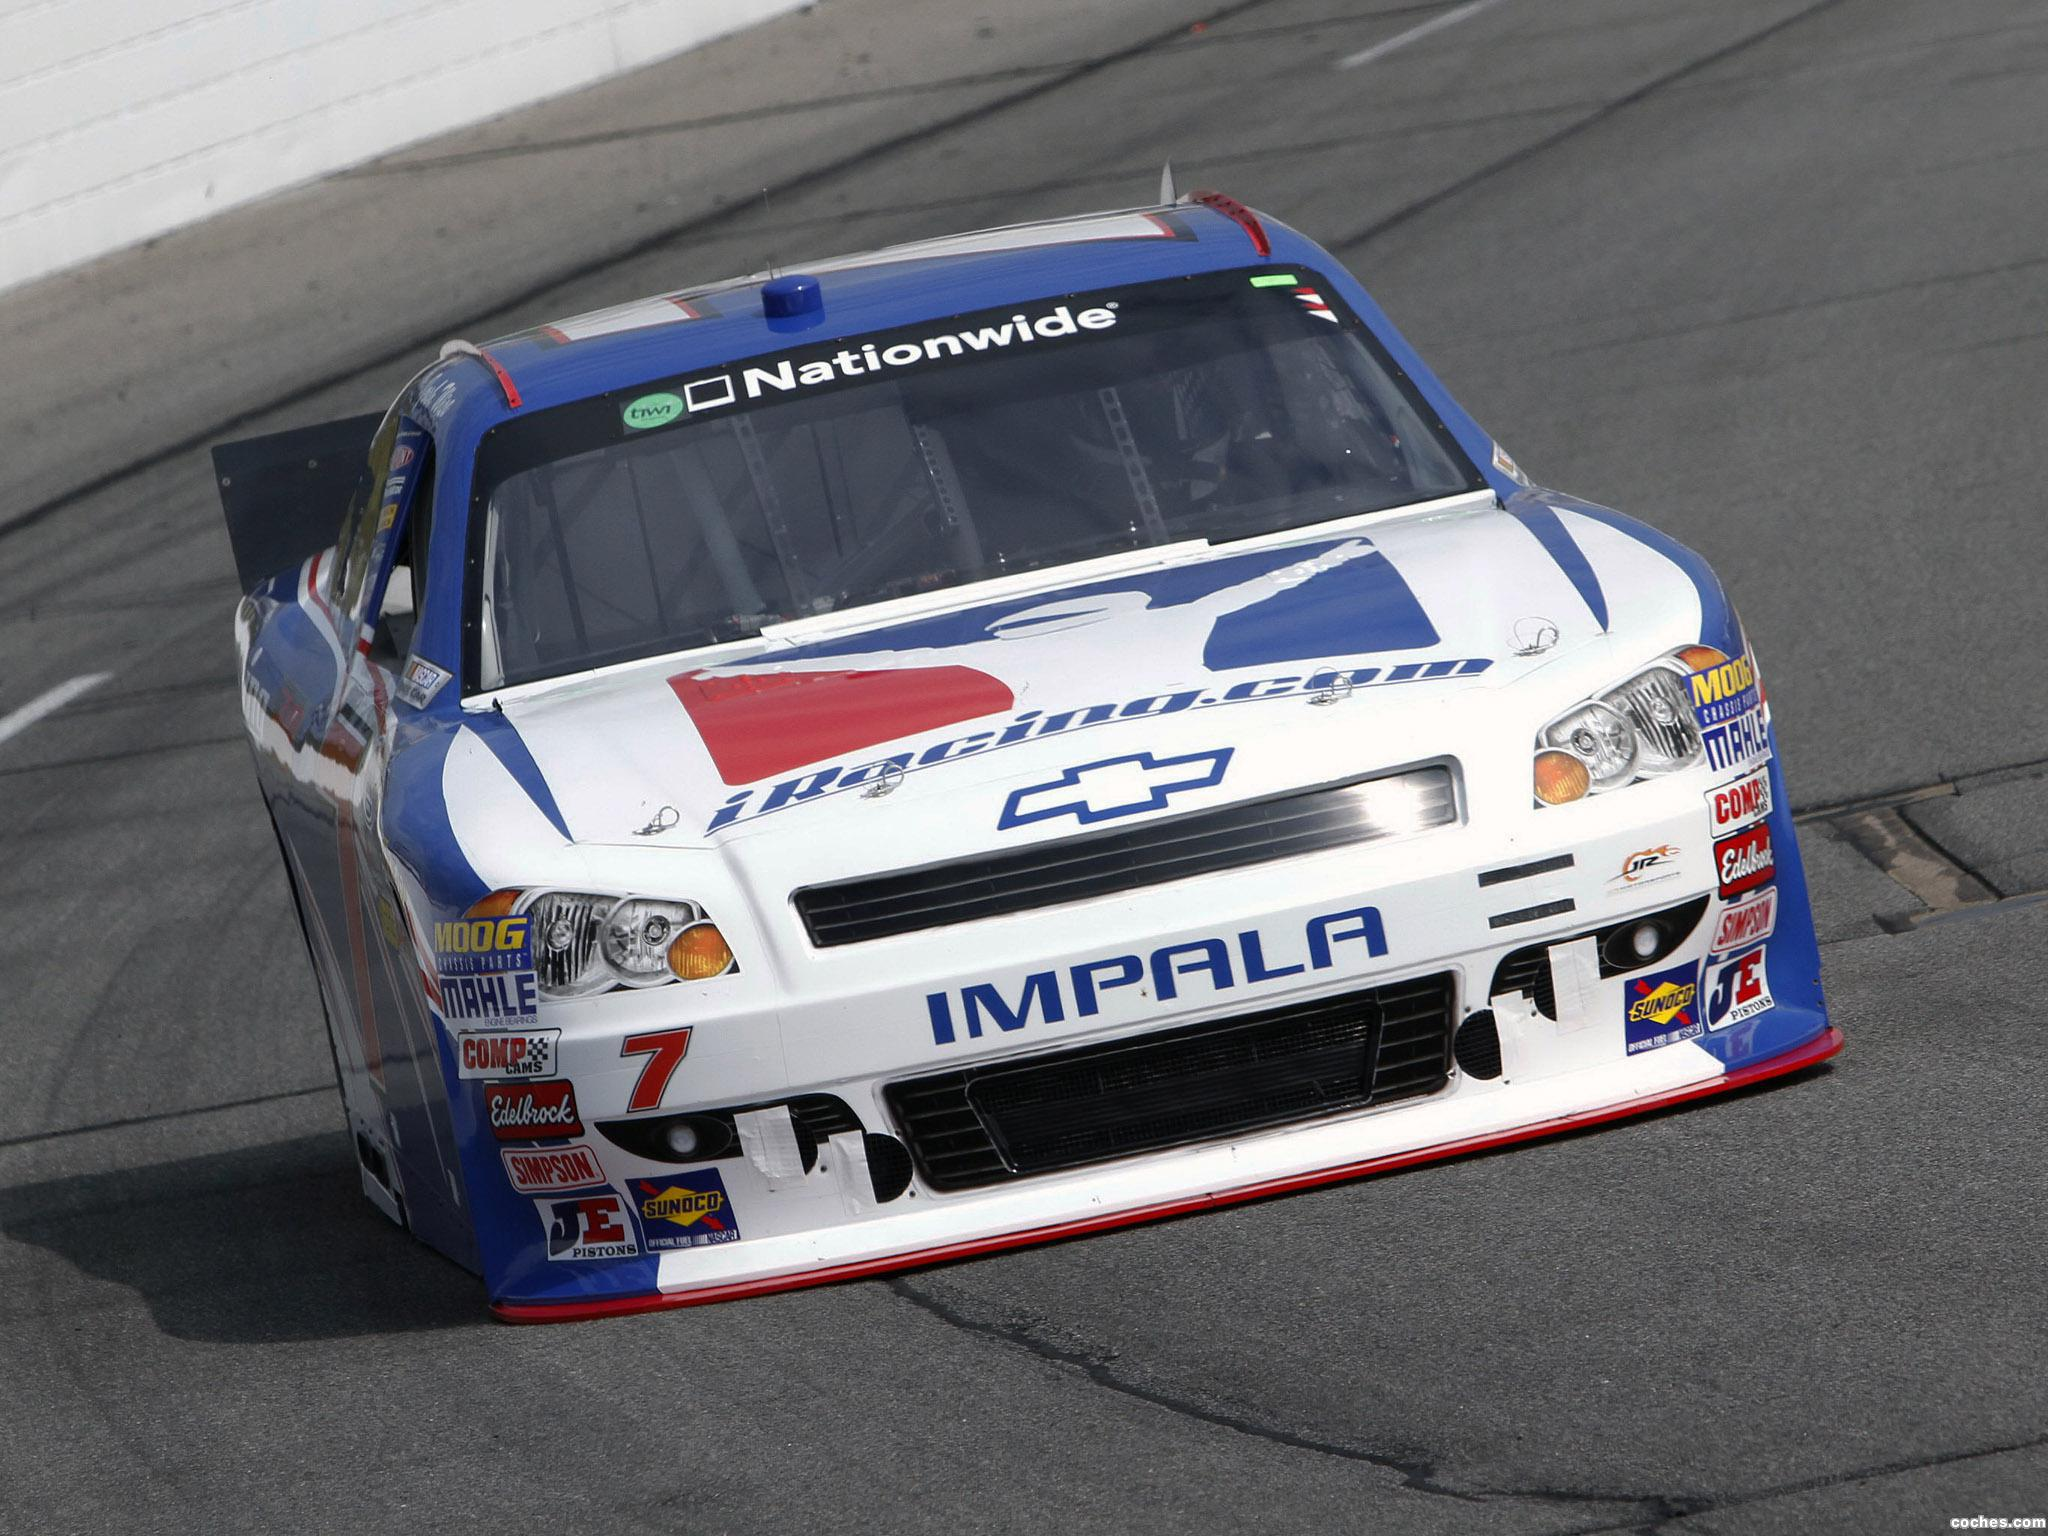 Foto 0 de Chevrolet Impala NASCAR Nationwide Series Race Car 2011